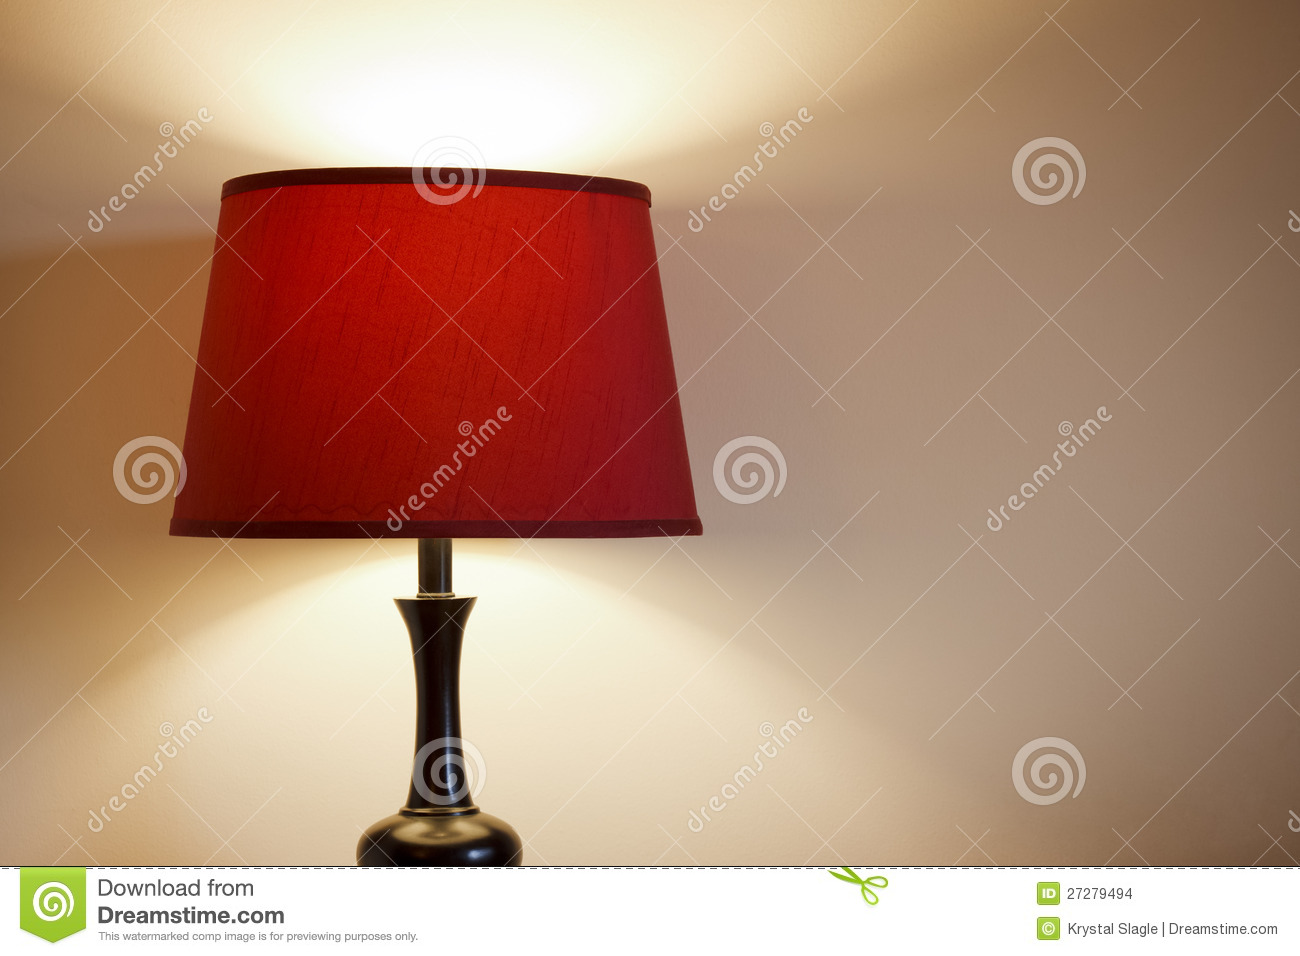 Light With Red Lamp Shade Stock Photo Image Of Lamp 27279494